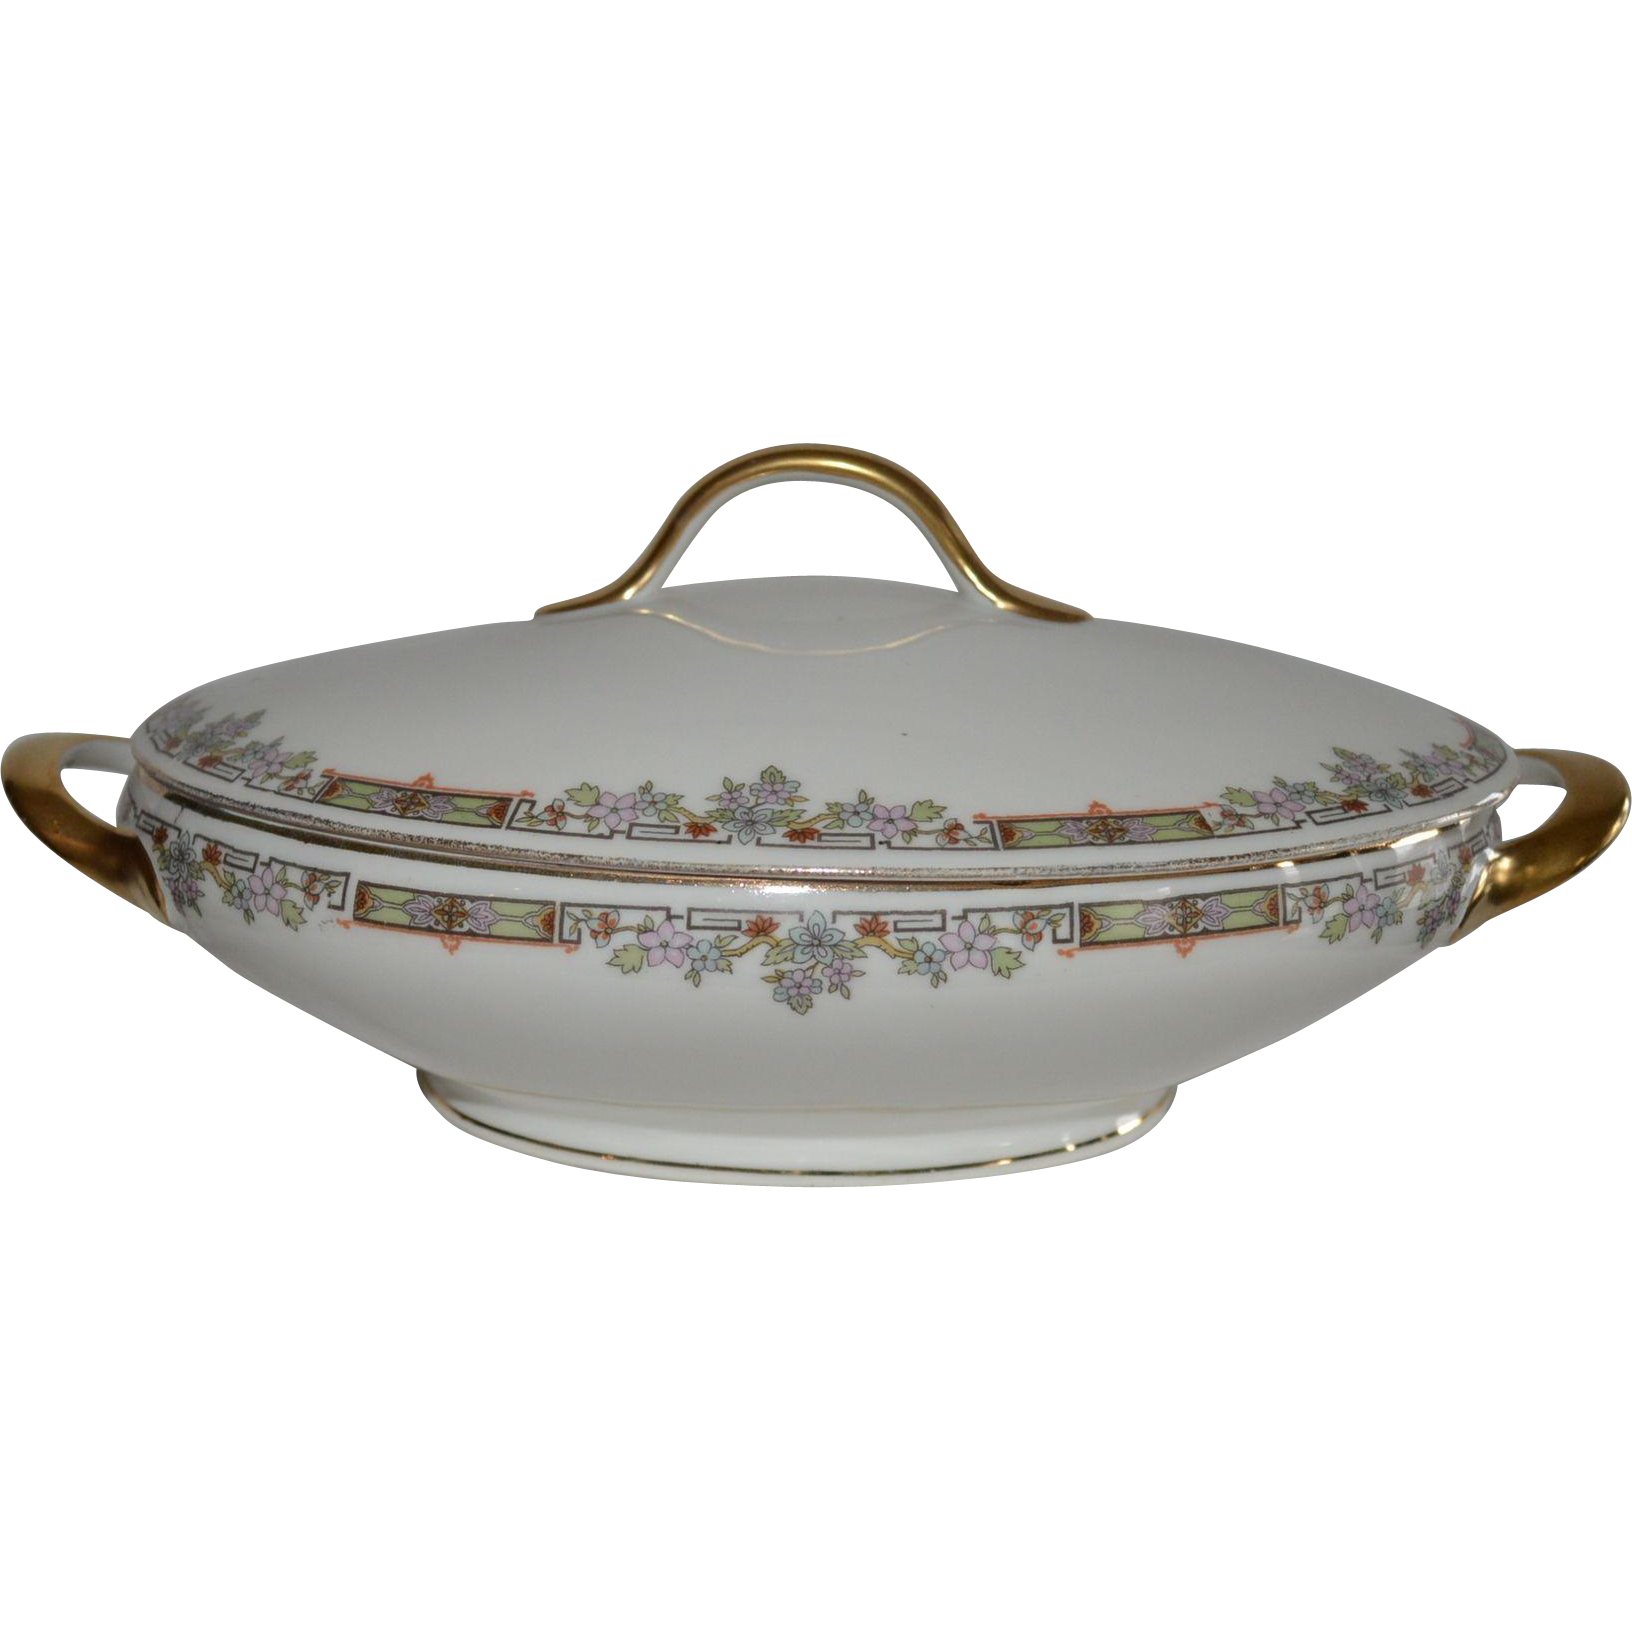 Nice Limoges Porcelain Covered Dish ~ Hand Painted with Colorful Flowers and Geometric Designs ~ Tressemann & Vogt ( T&V )  1907